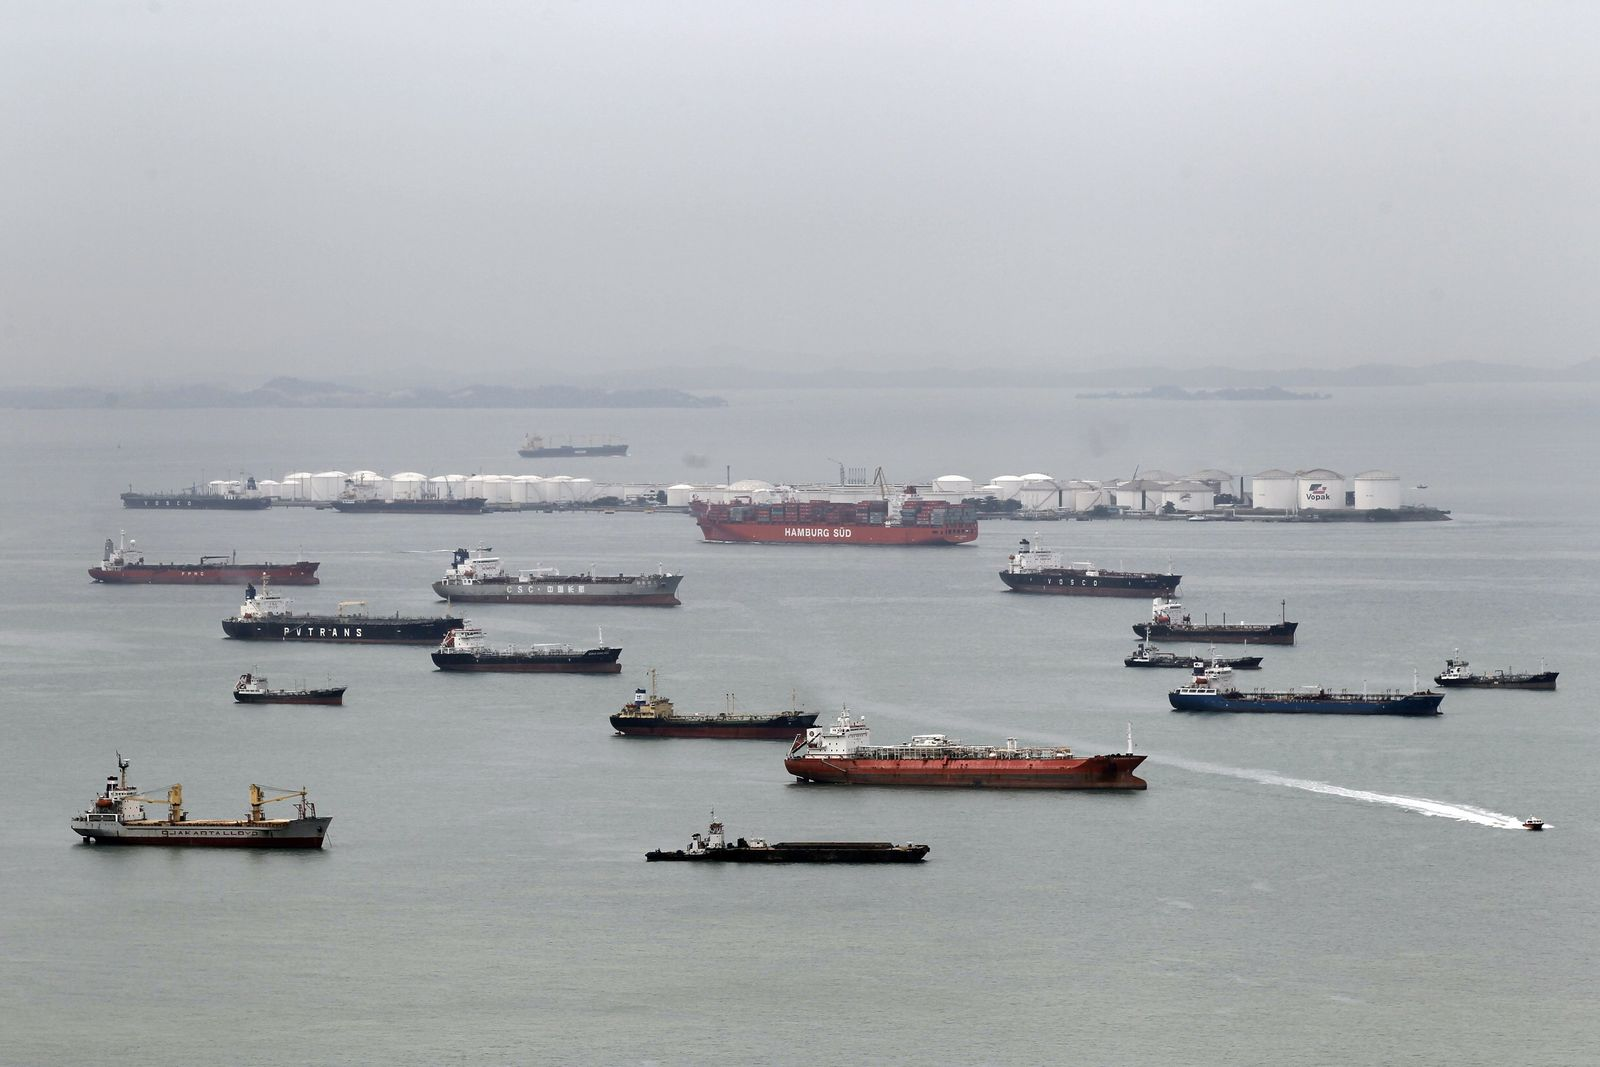 The container ship Hamburg Sud (C) steams out of port past bulk c